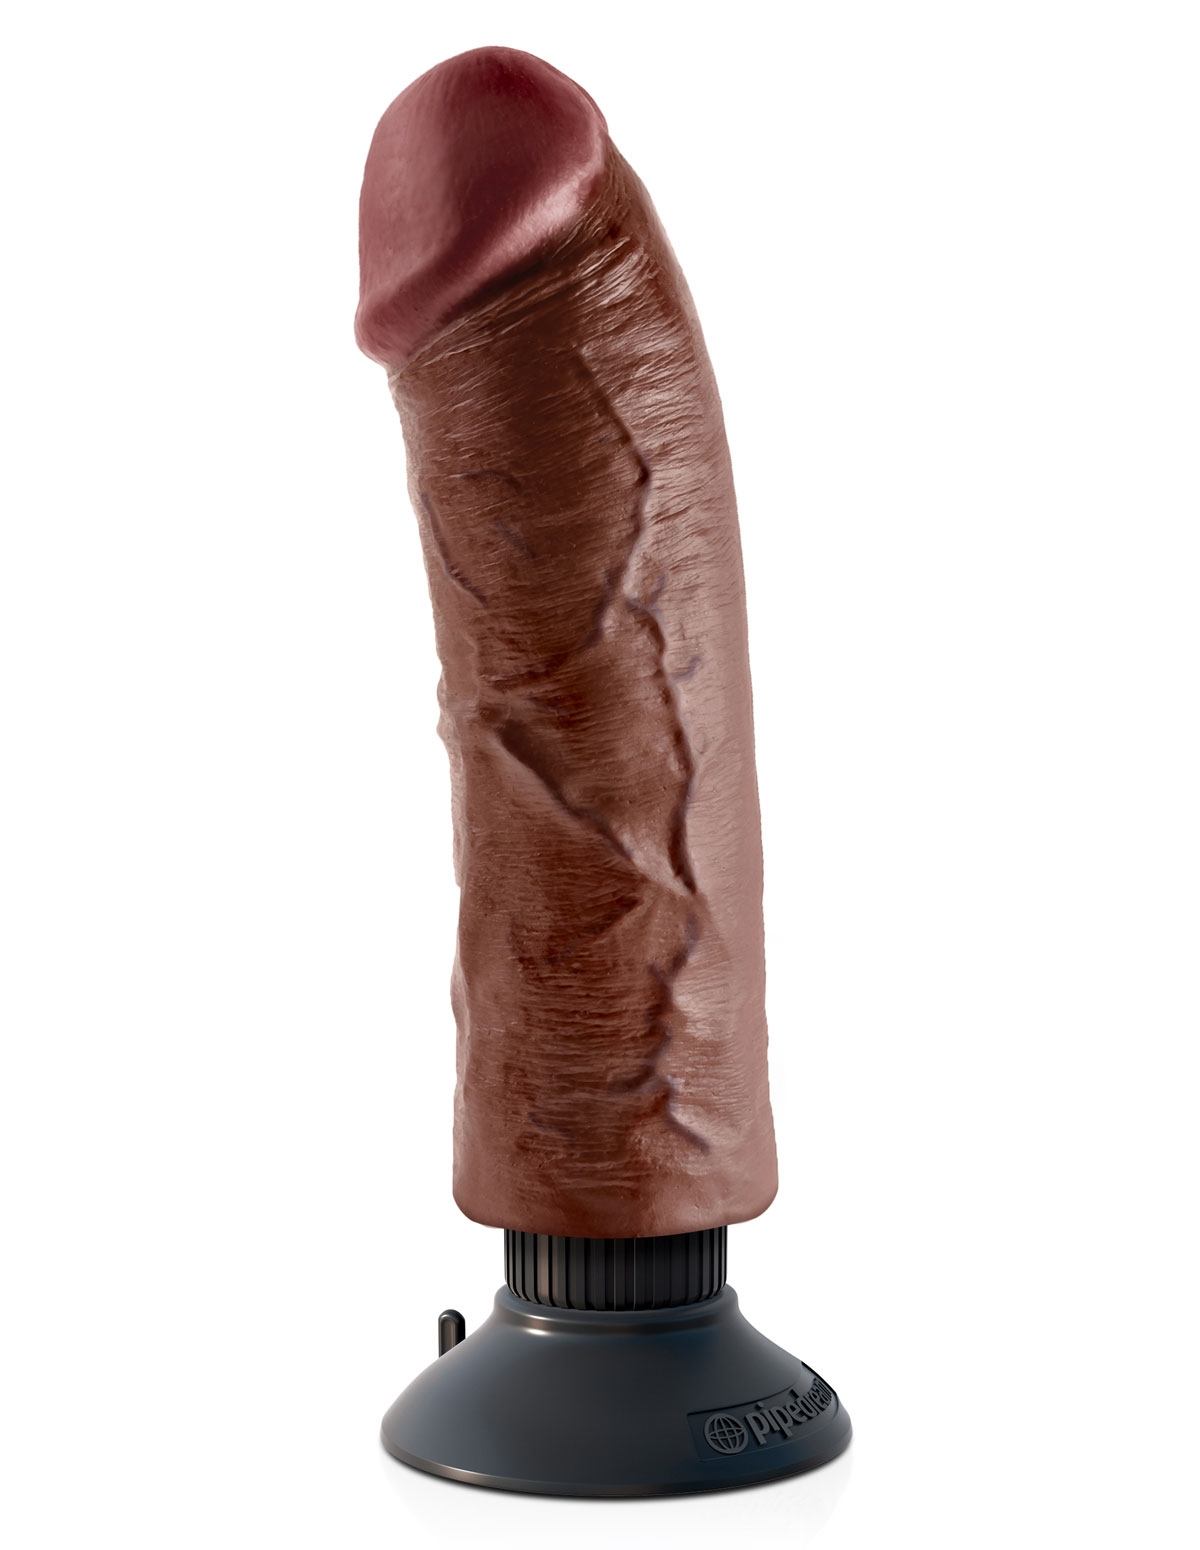 King Cock 8-Inch Vibrator With Suction Cup Brown